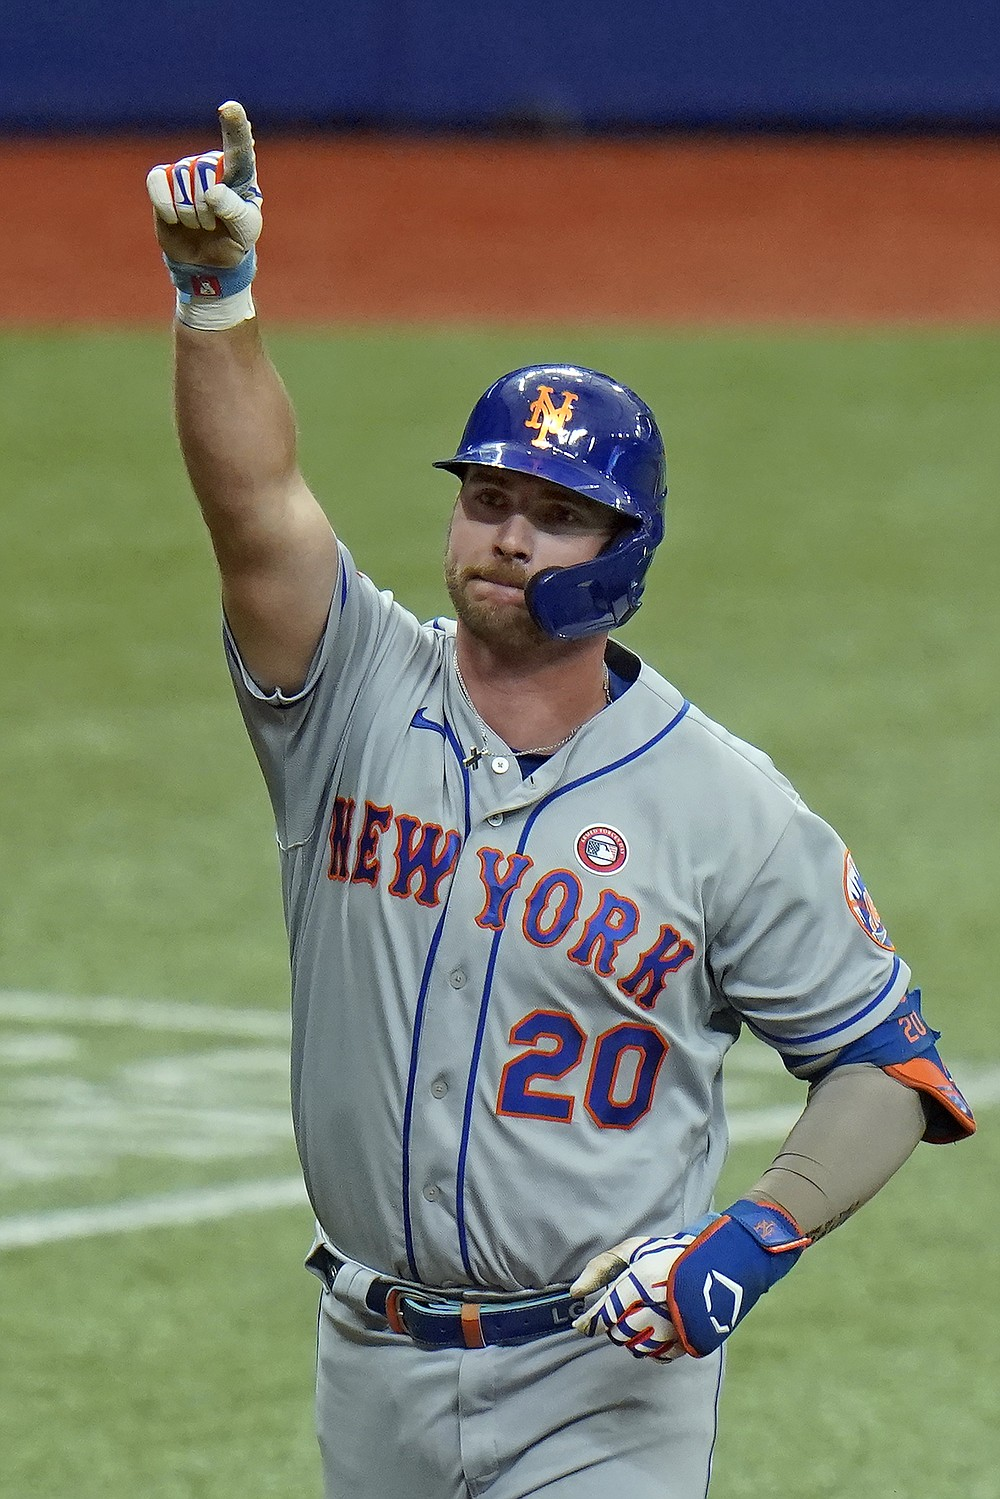 New York Mets' Pete Alonso reacts after his solo home run off Tampa Bay Rays starting pitcher Shane McClanahan during the third inning of a baseball game Saturday, May 15, 2021, in St. Petersburg, Fla. (AP Photo/Chris O'Meara)